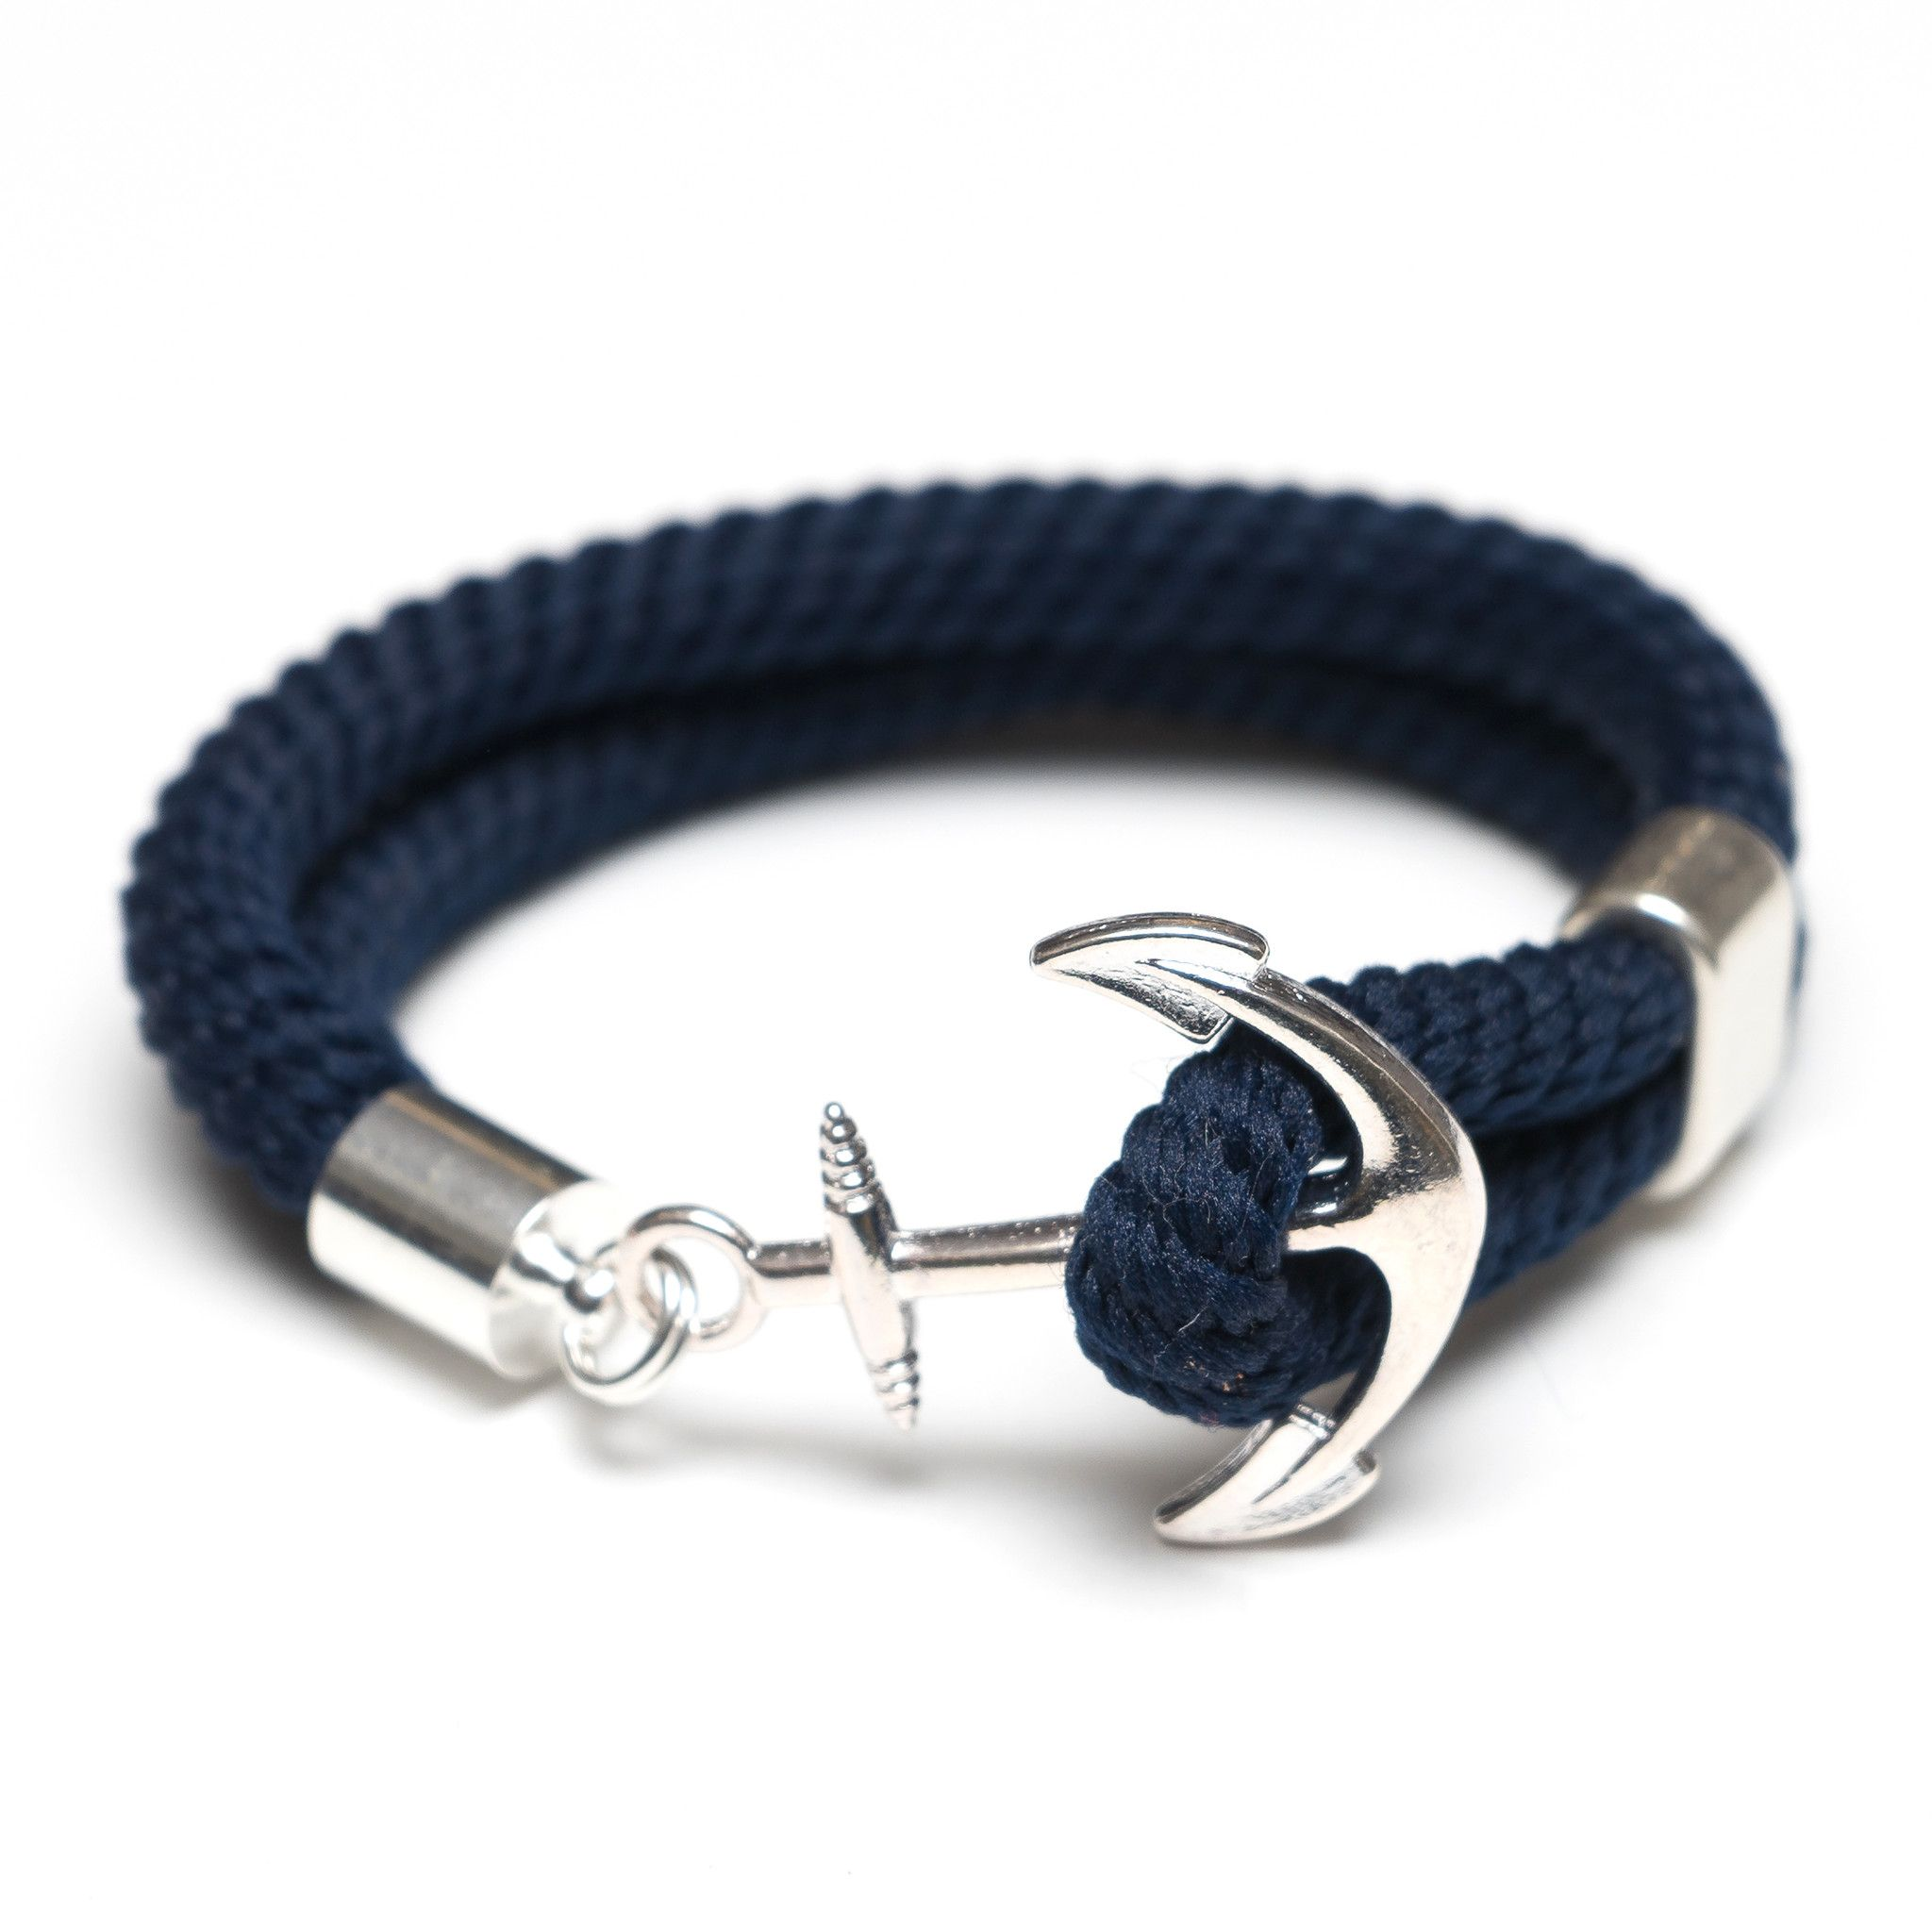 nautical rope ecuatwitt bracelet men bracelets black for rhodium plated polished turner